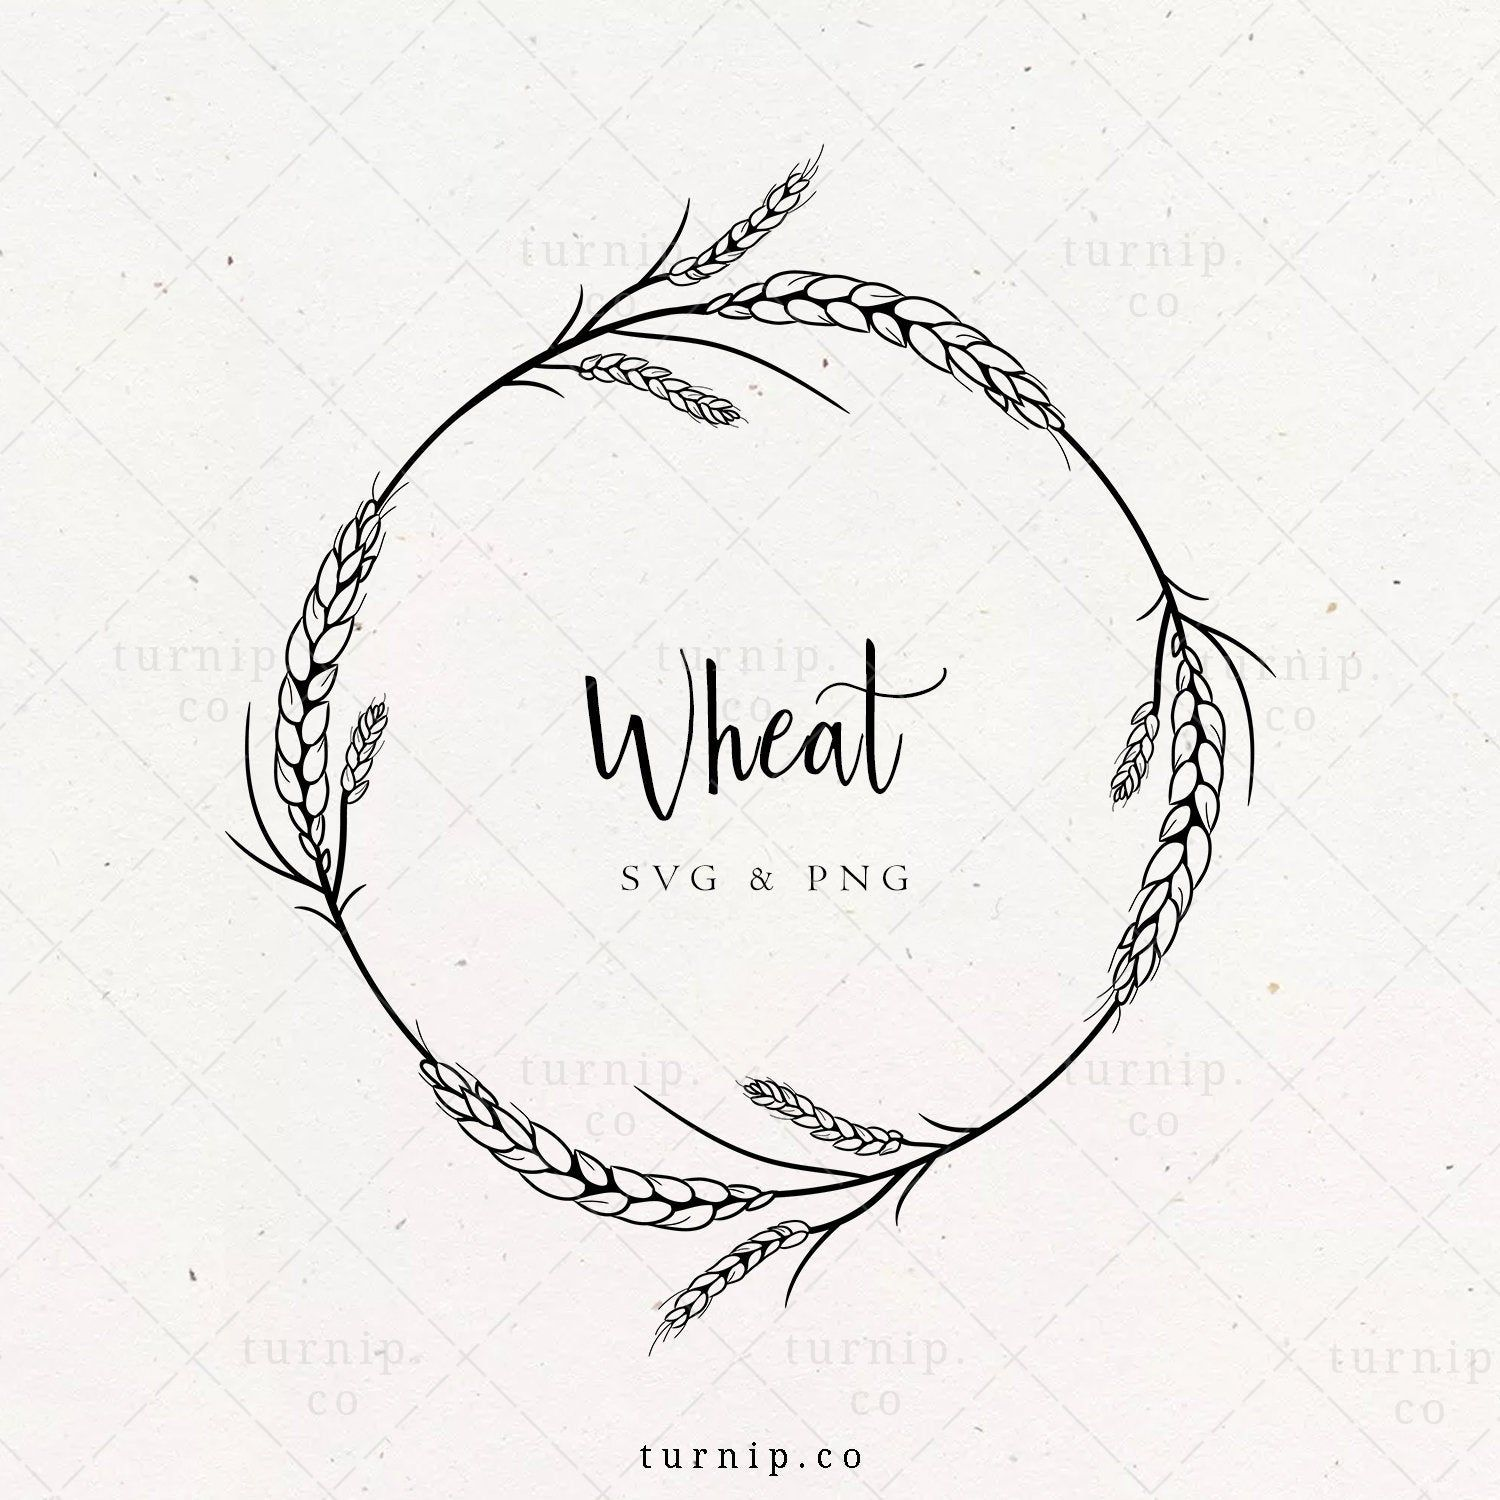 Laurel Wreath Svg Wheat Wreath Clipart Thanksgiving Wreath Png Wedding Logo Label Design Hand Drawn Frame Border Instant Download How To Draw Hands Wheat Tattoo Drawing Frames